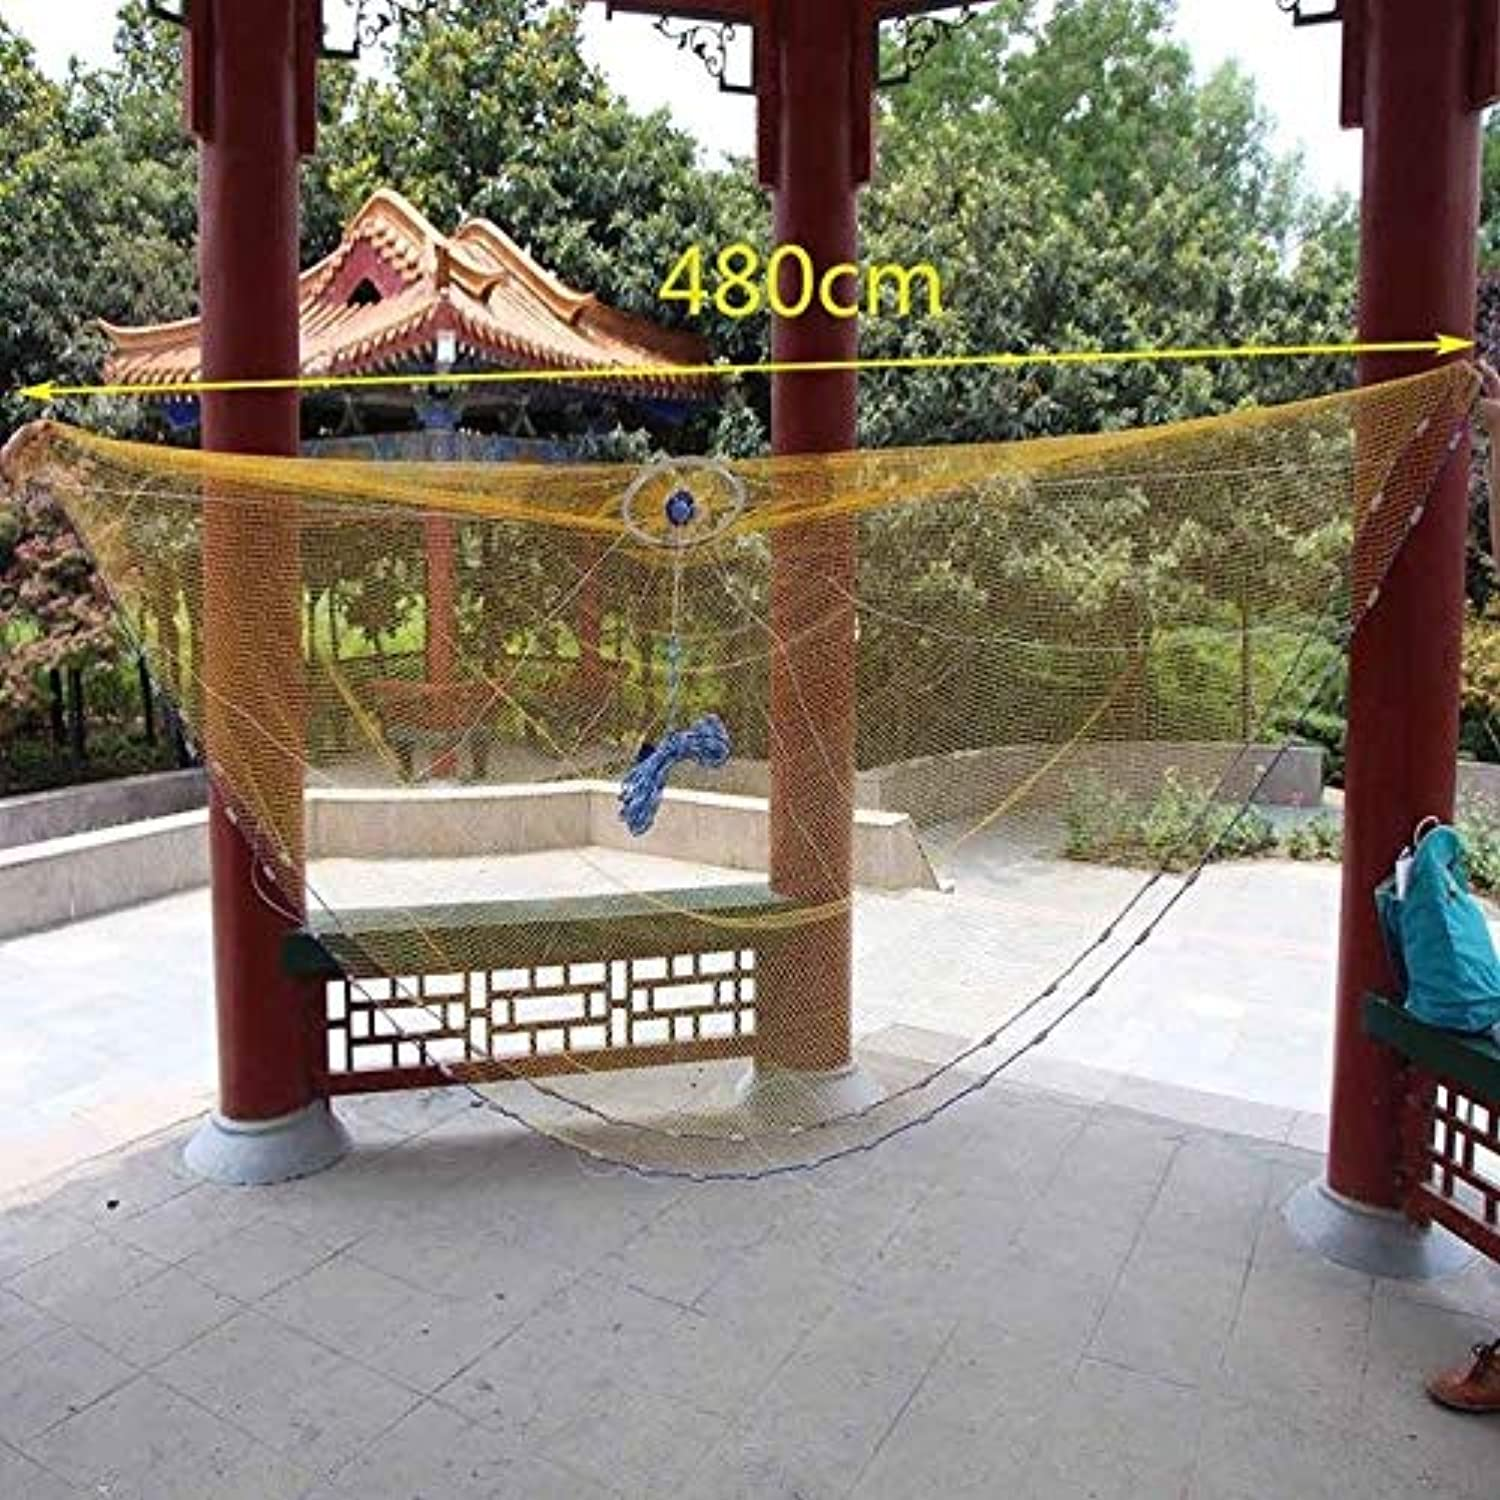 Lawaia Fly Fishing Net Saltwater Casting Nets 2ft Fishing Network Holder Monofilament Nylon Lead sinkers Fish Tools   Yellow 480cm